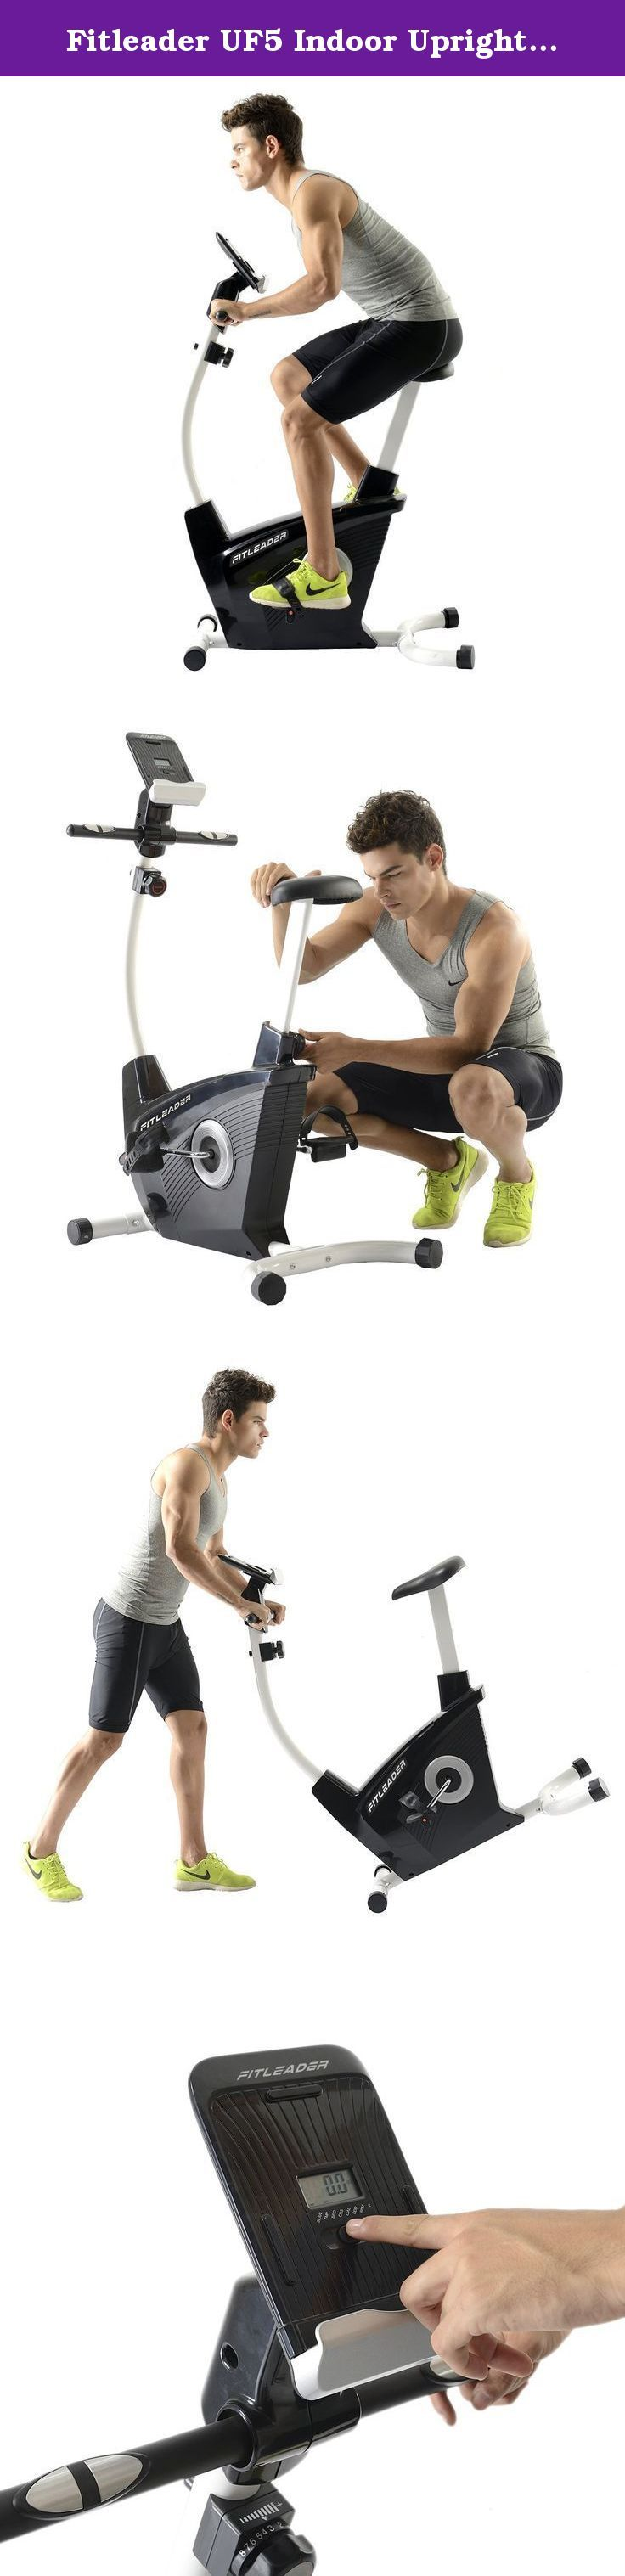 Fitleader UF5 Indoor Upright Bike Exercise Magnetic Resistance Stationary Cardio Cycle. Why Choose a Fitleader Upright Bike? Are you still trying to find the economy stationary bike for your home gym? If so, the Fitleader UF5 upright bike is the high quality, competitively priced exercise bike you've been looking for! With its eight resistance levels and progress readouts for speed, RPM, time, distance, watts, calories and pulse, the UF5 is exactly what you need to achieve your fitness...